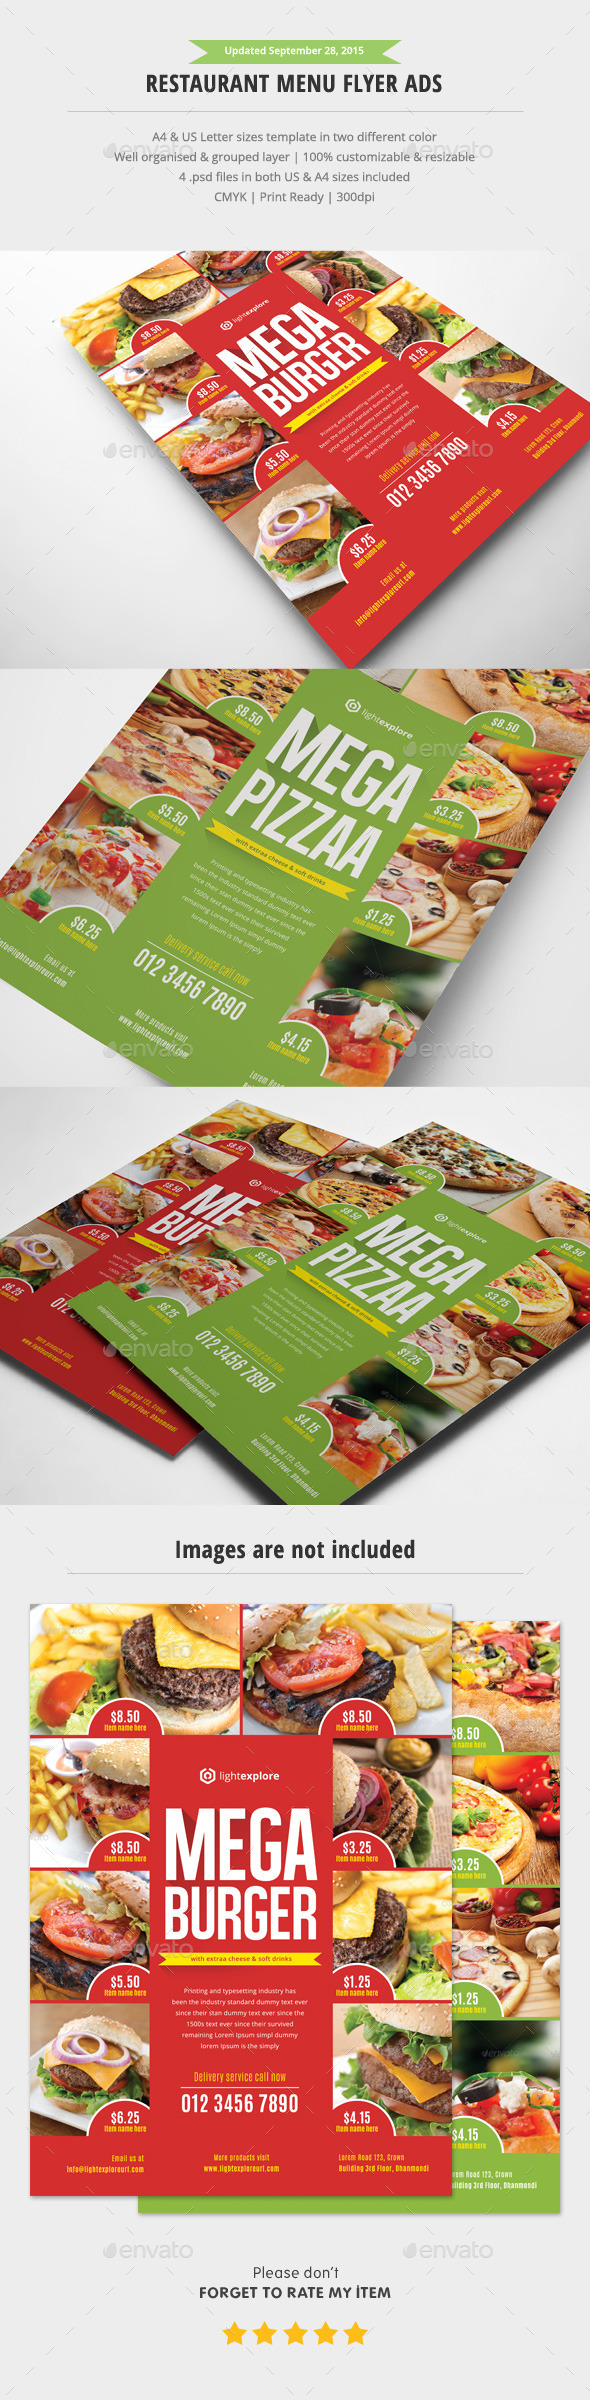 Restaurant Menu Flyer Ads